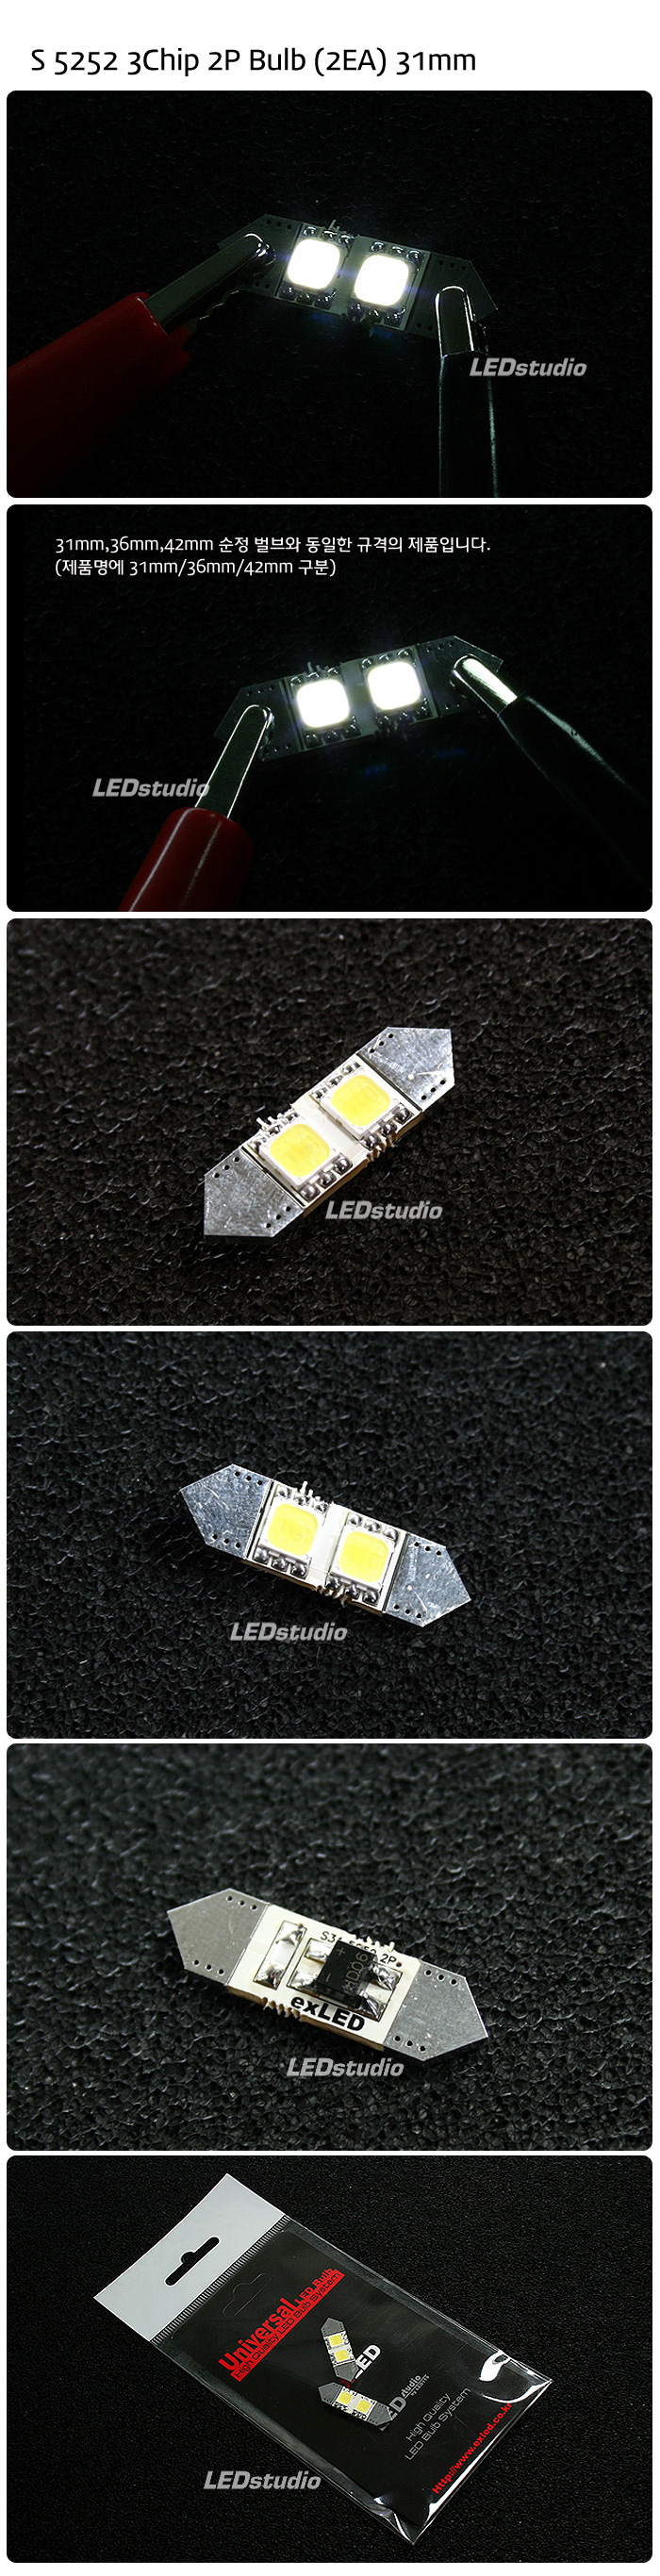 exLED S 5252 3Chip 2P Bulb (2EA) 31mm